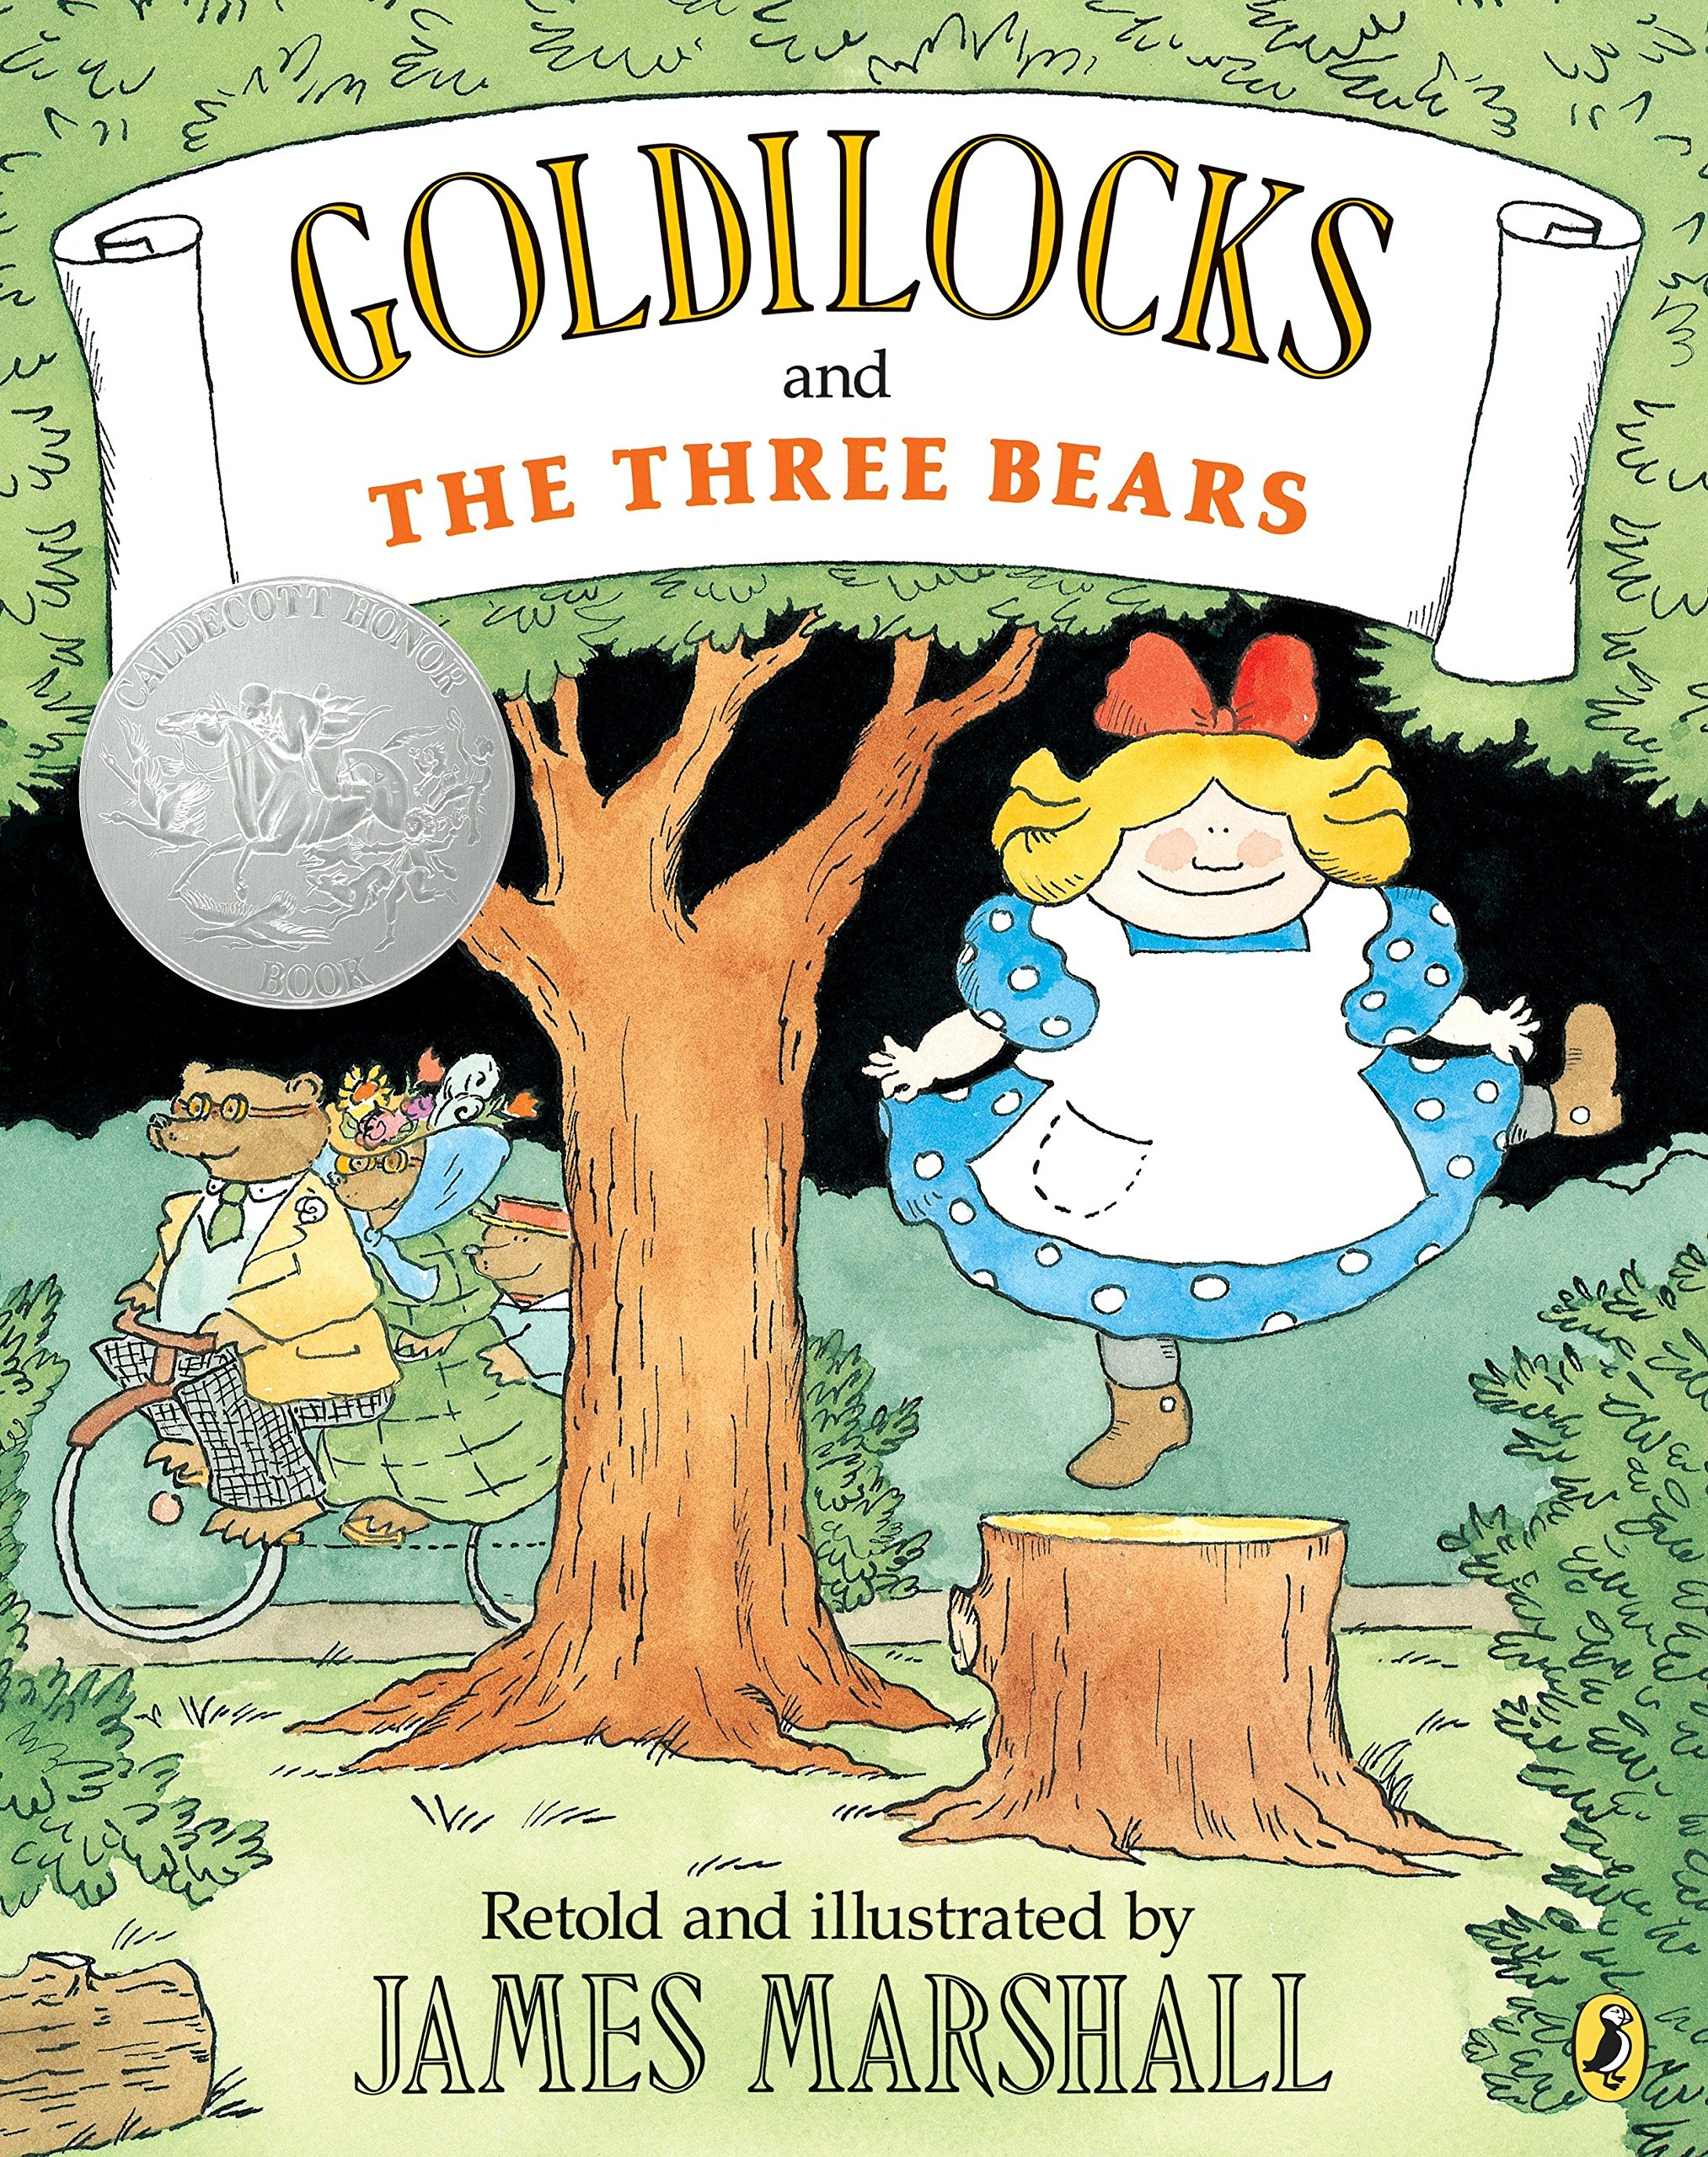 Image result for goldilocks and the three bears james marshall